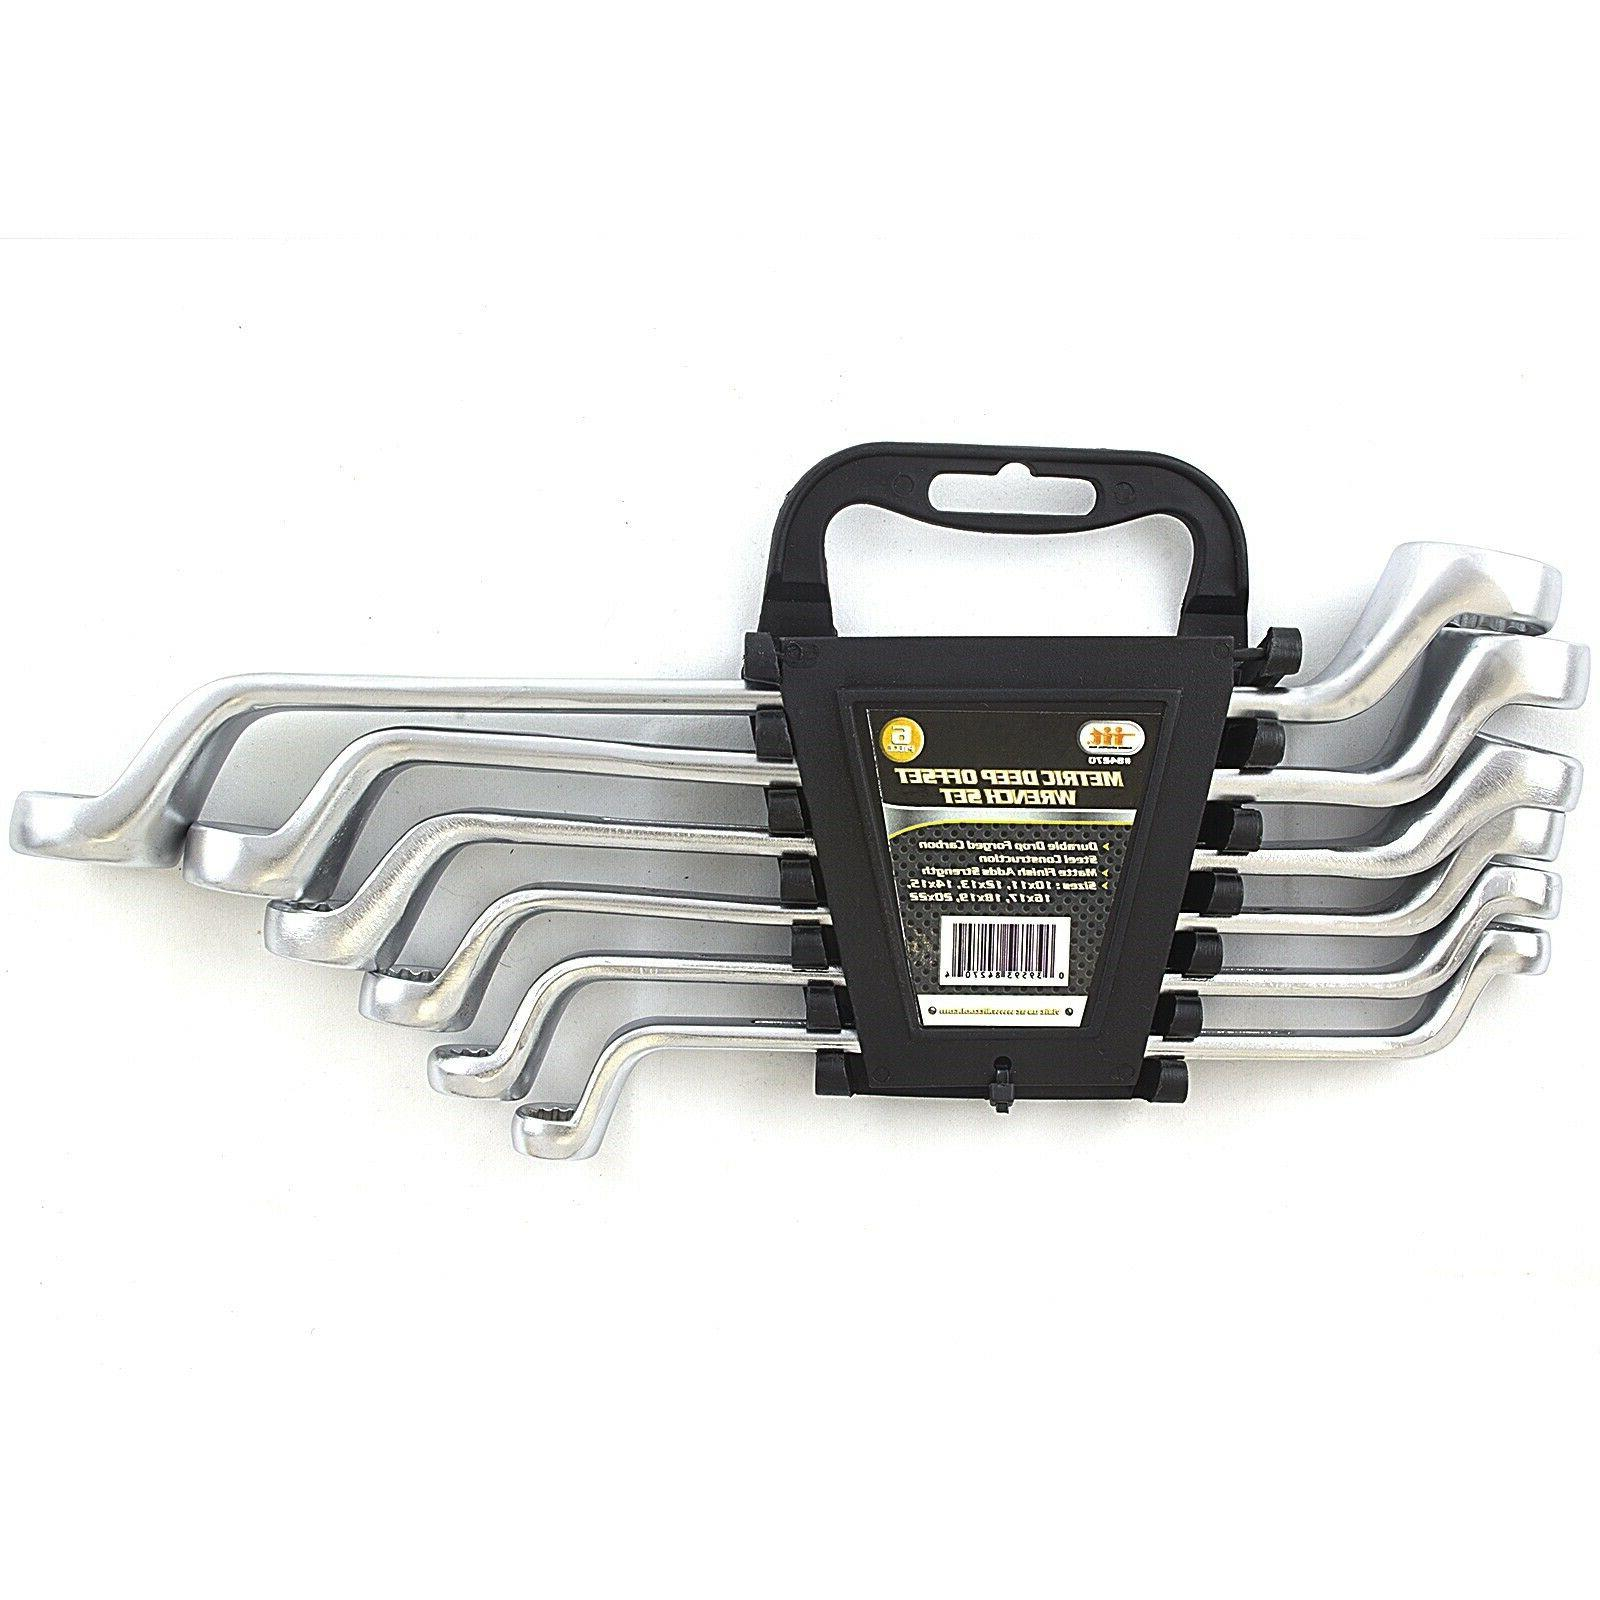 6 PIECE METRIC DOUBLE OFFSET BOX END RING 10-22mm WRENCHES T